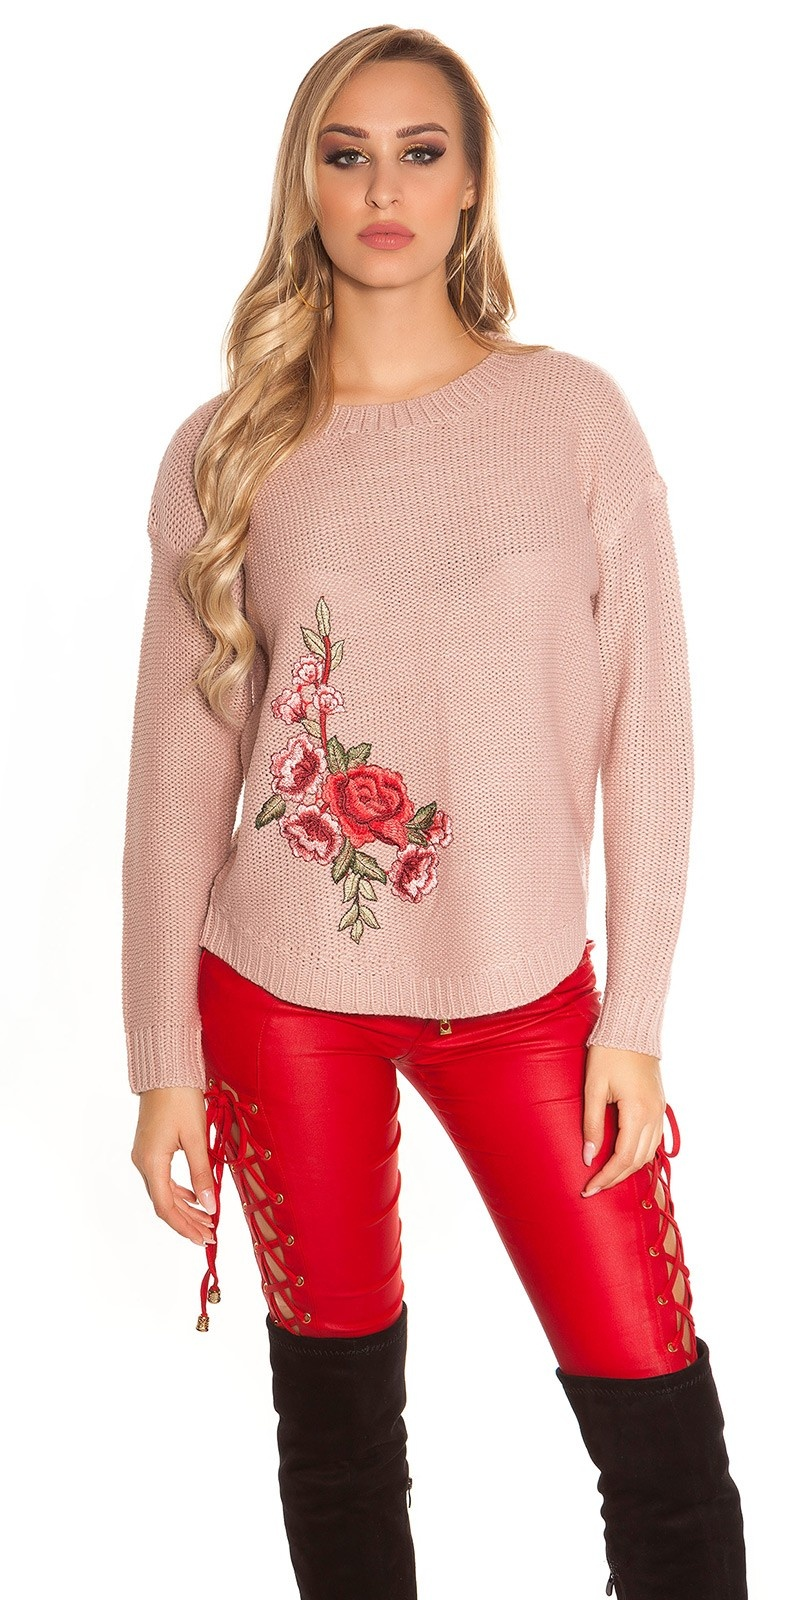 Trendy KouCla knit jumper with embroidery Antiquepink